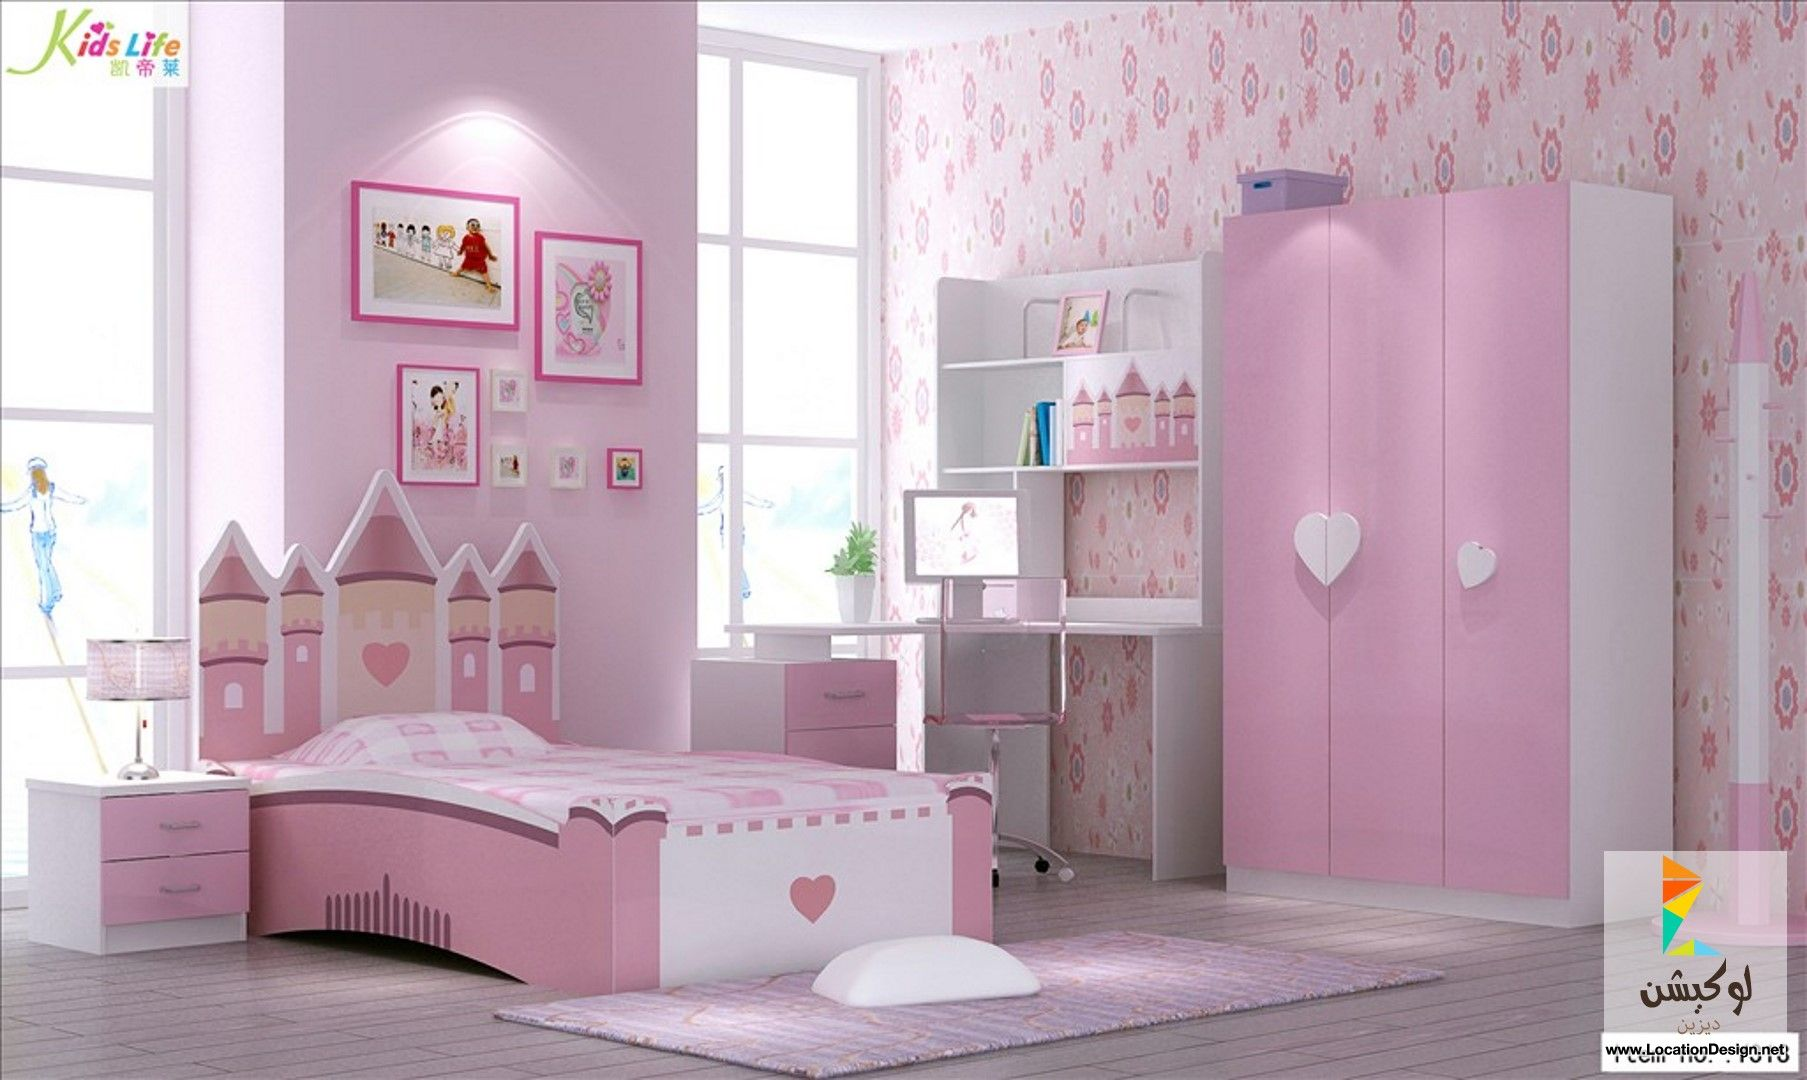 Bedroom furniture for girls castle - China Pink Castle Kids Bedroom Furniture Sets Find Details About China Art Furniture Acrylic Chair From Pink Castle Kids Bedroom Furniture Sets Foshan